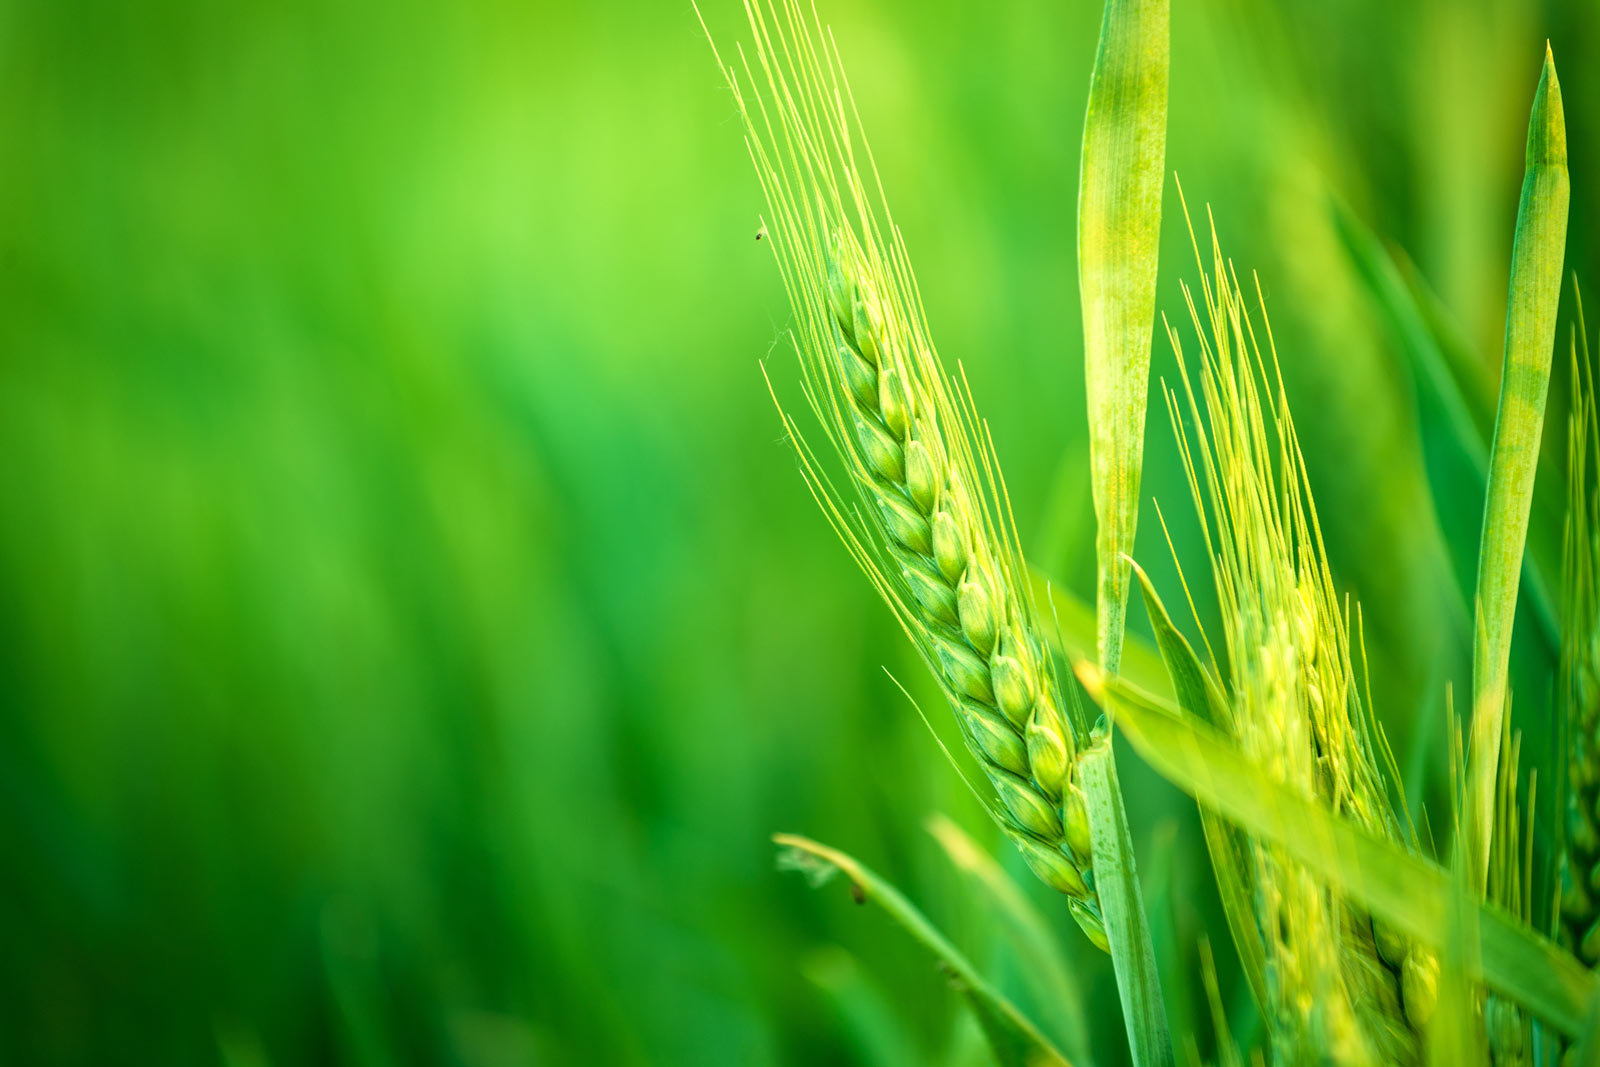 Sequencing the wheat genome